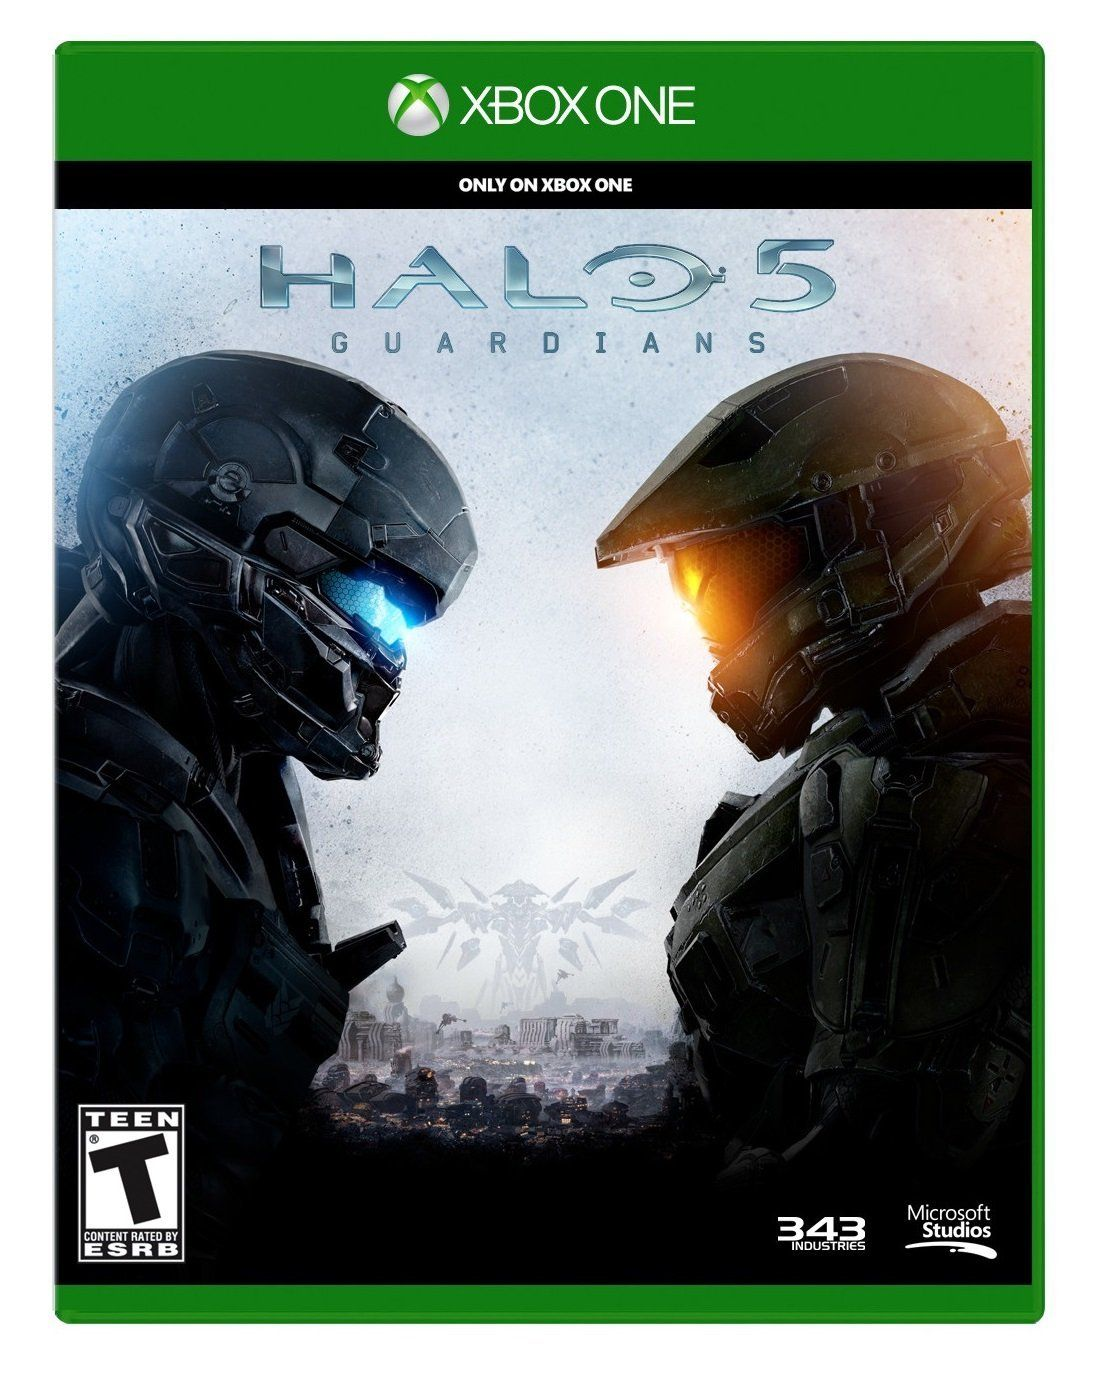 New Games Halo 5 Guardians Xbox One Halo 5 Xbox One Halo 5